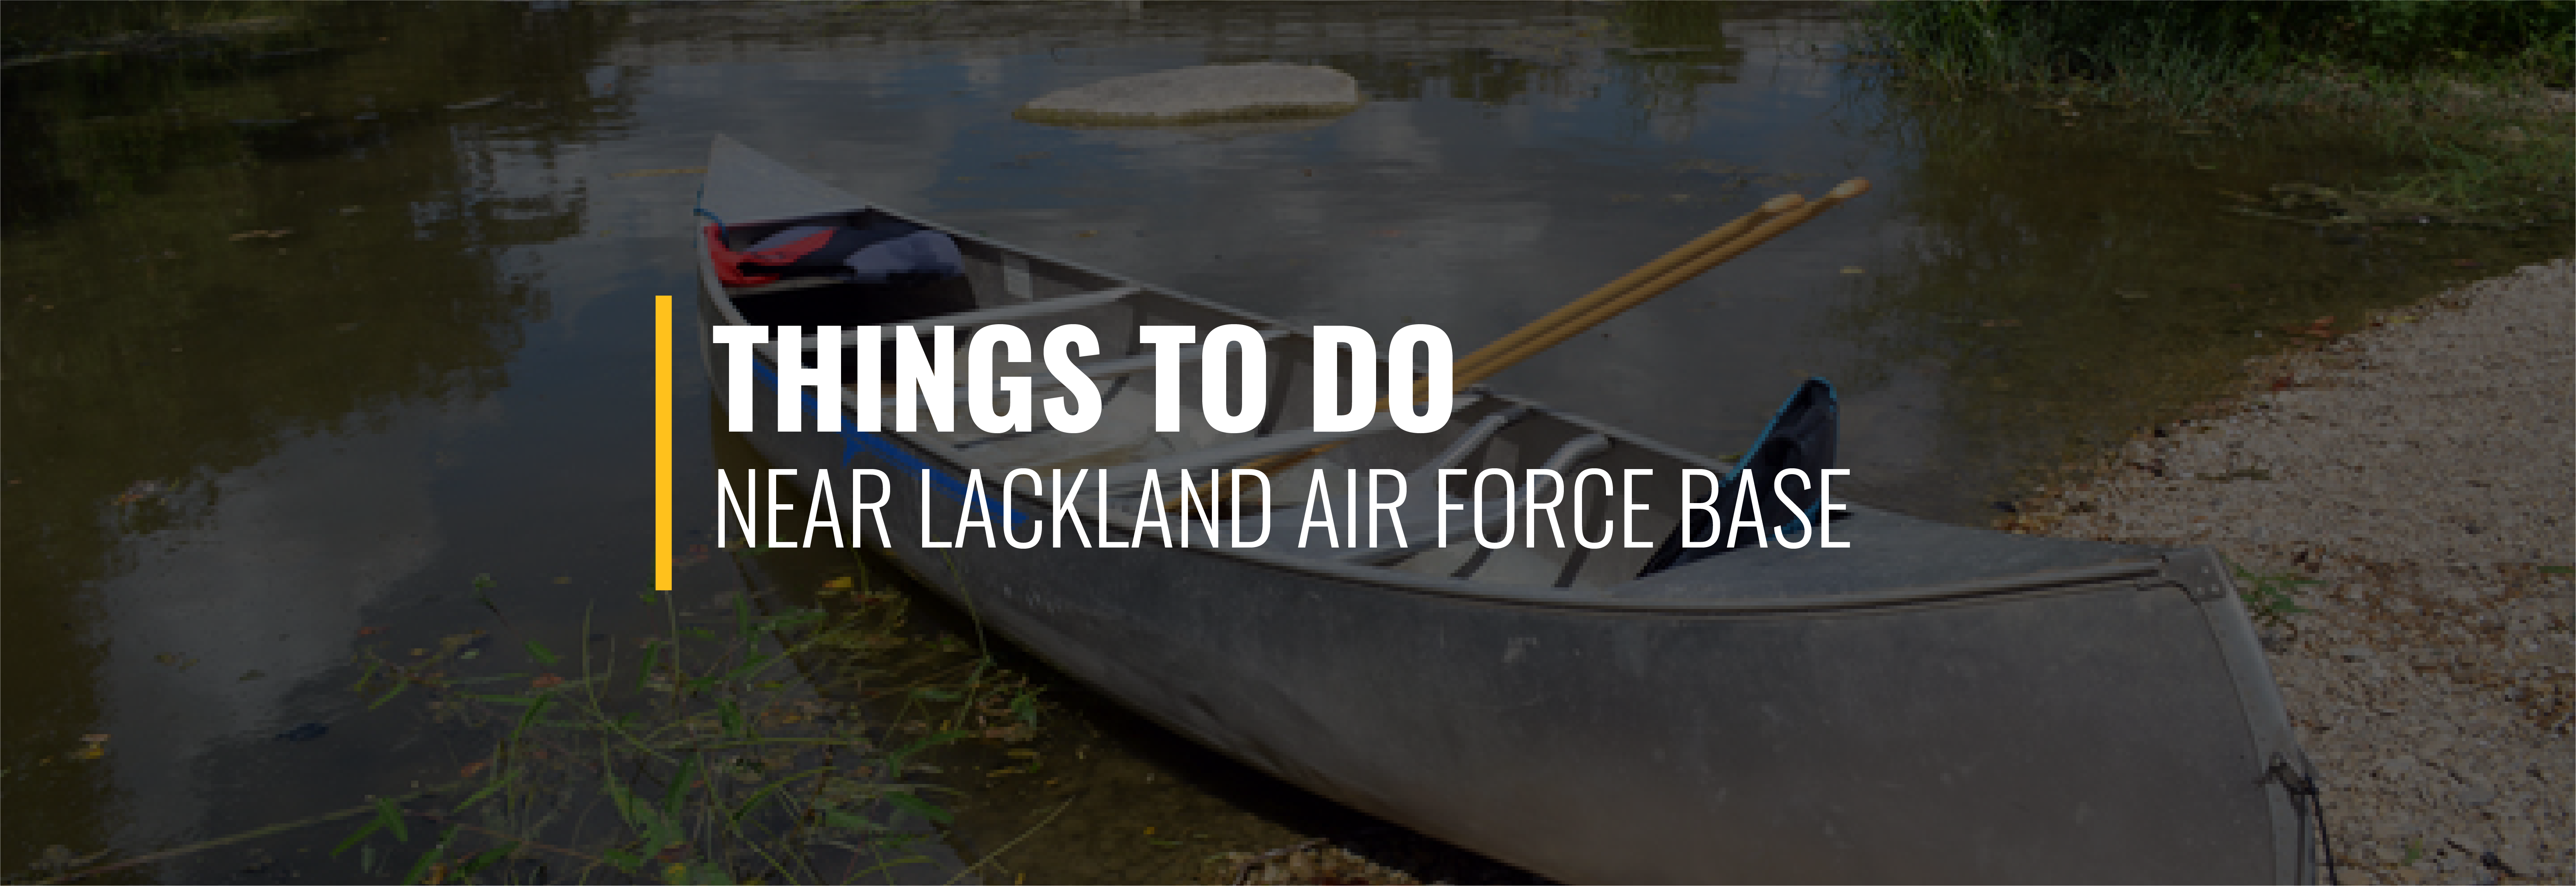 Things to Do on Lackland AFB